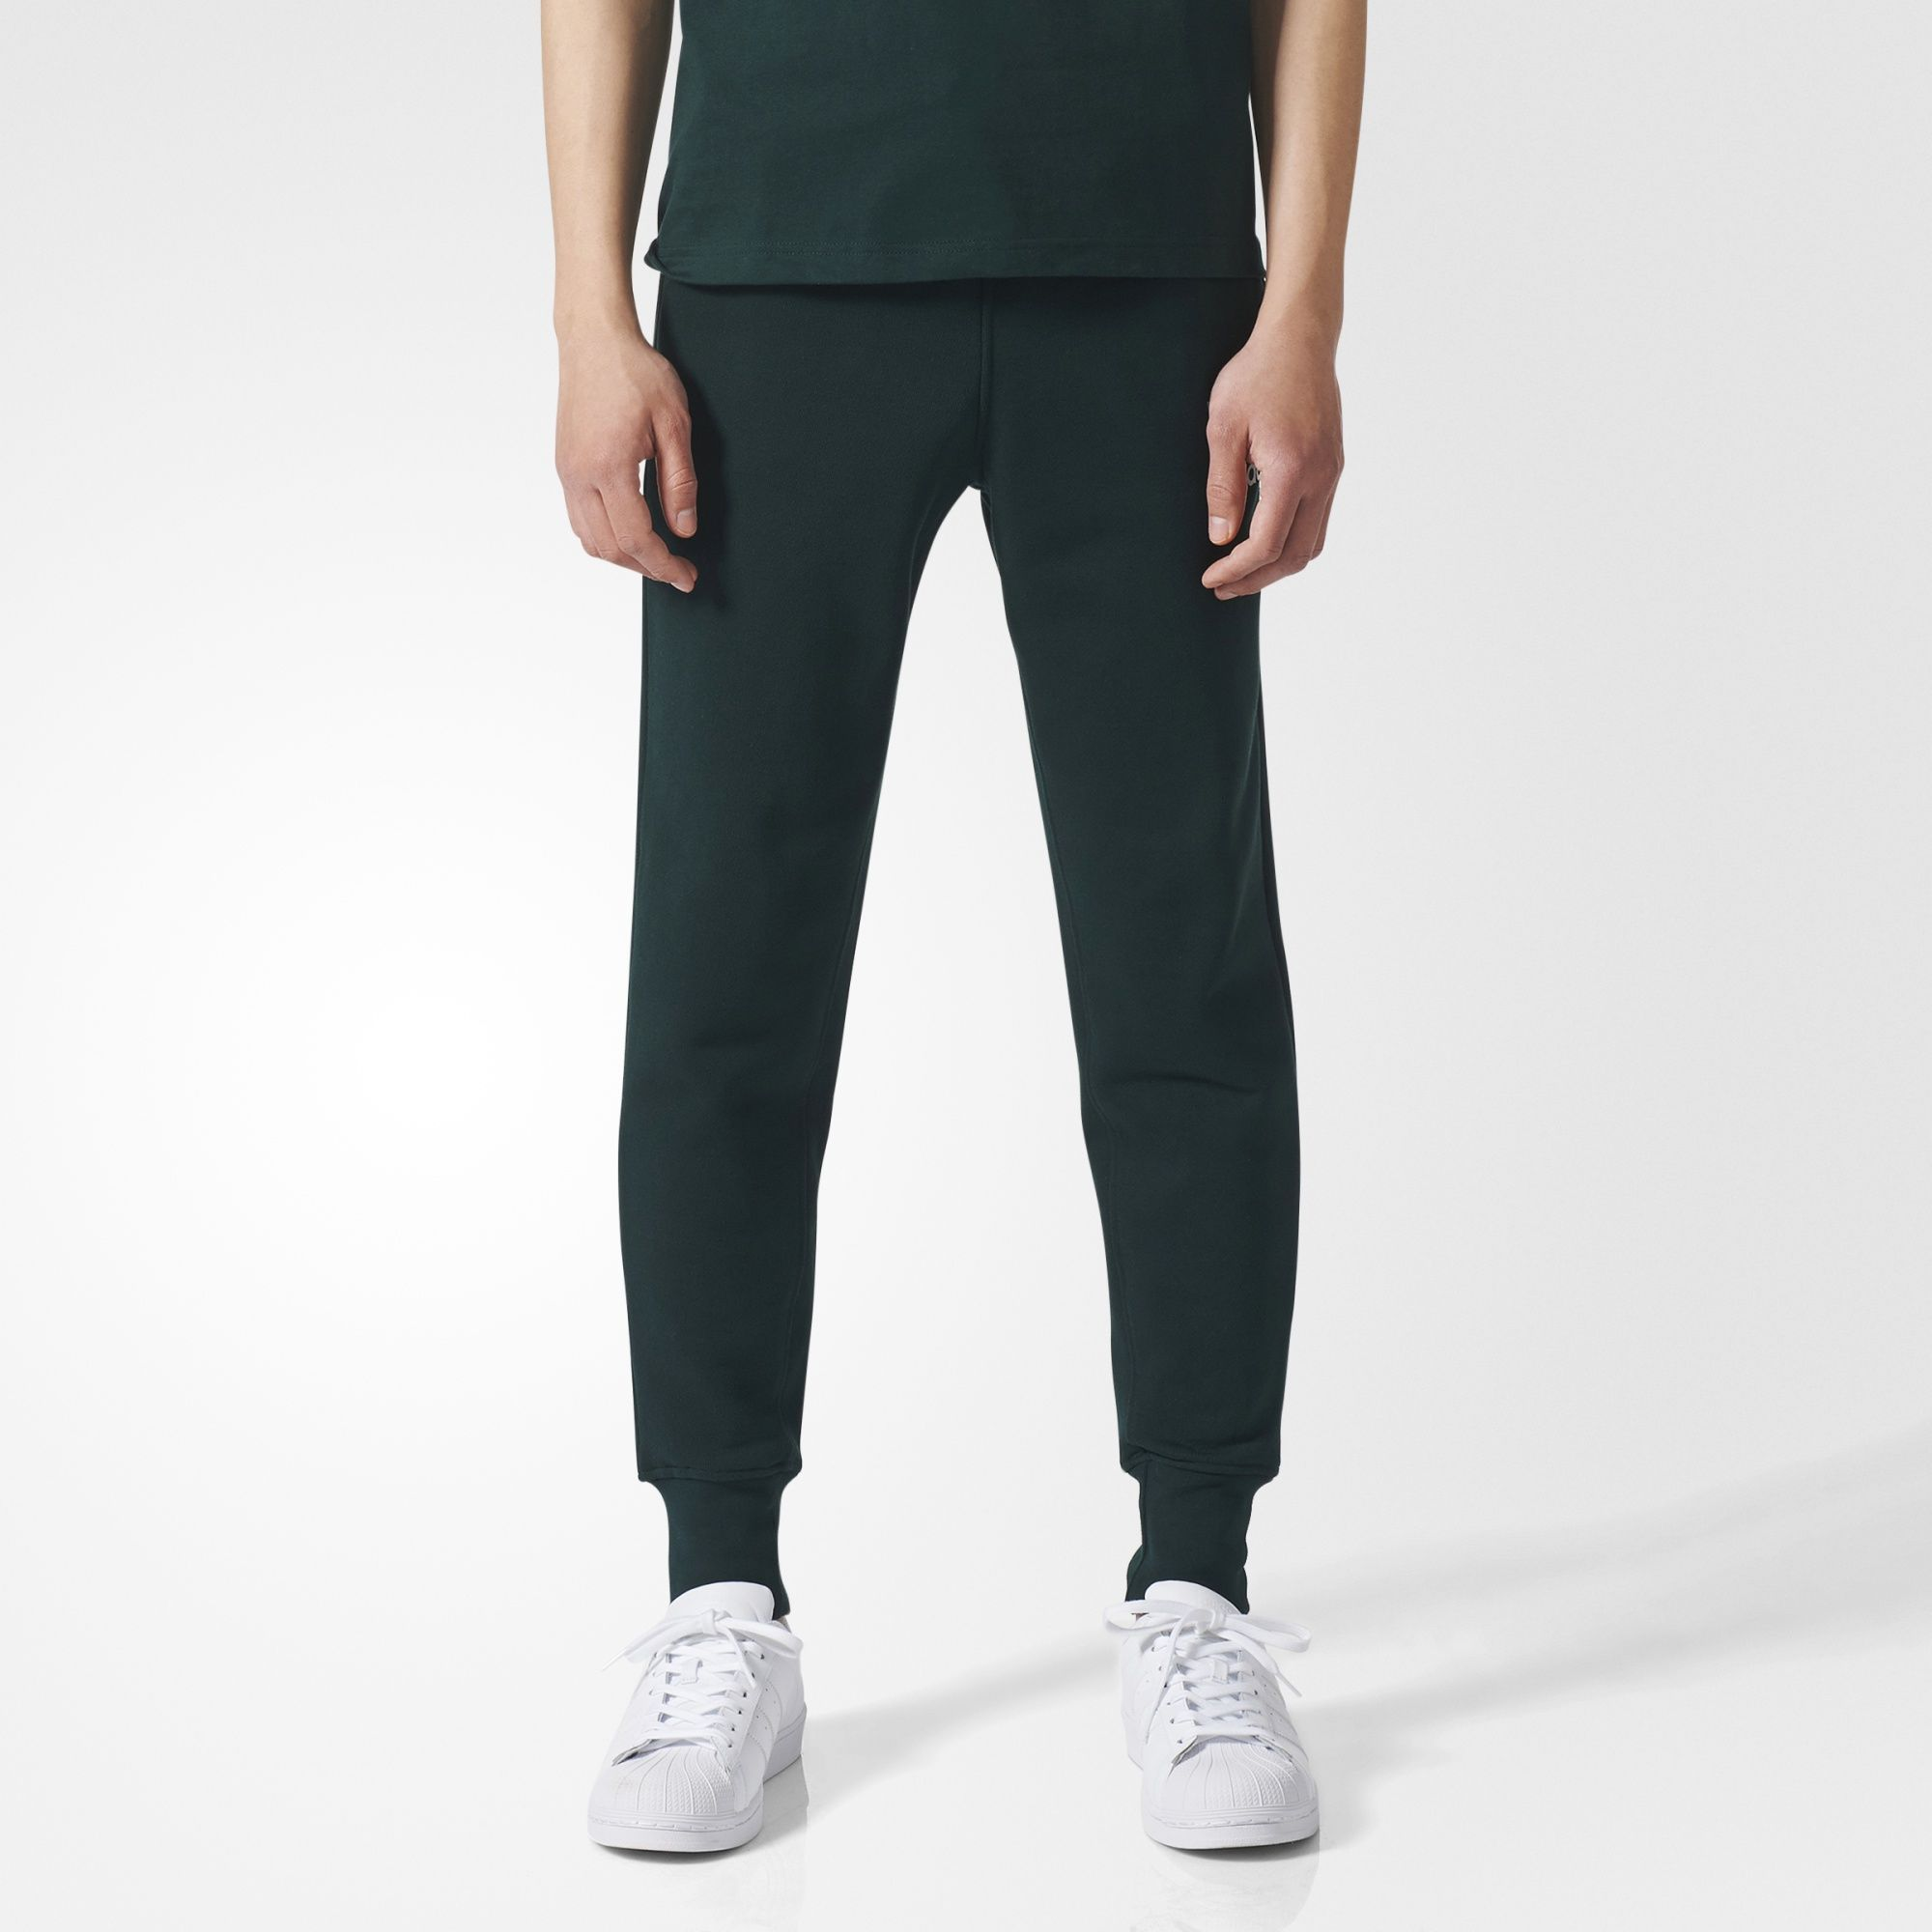 8a58989fbb A slim silhouette and elongated, ribbed ankle cuffs make these men's ...